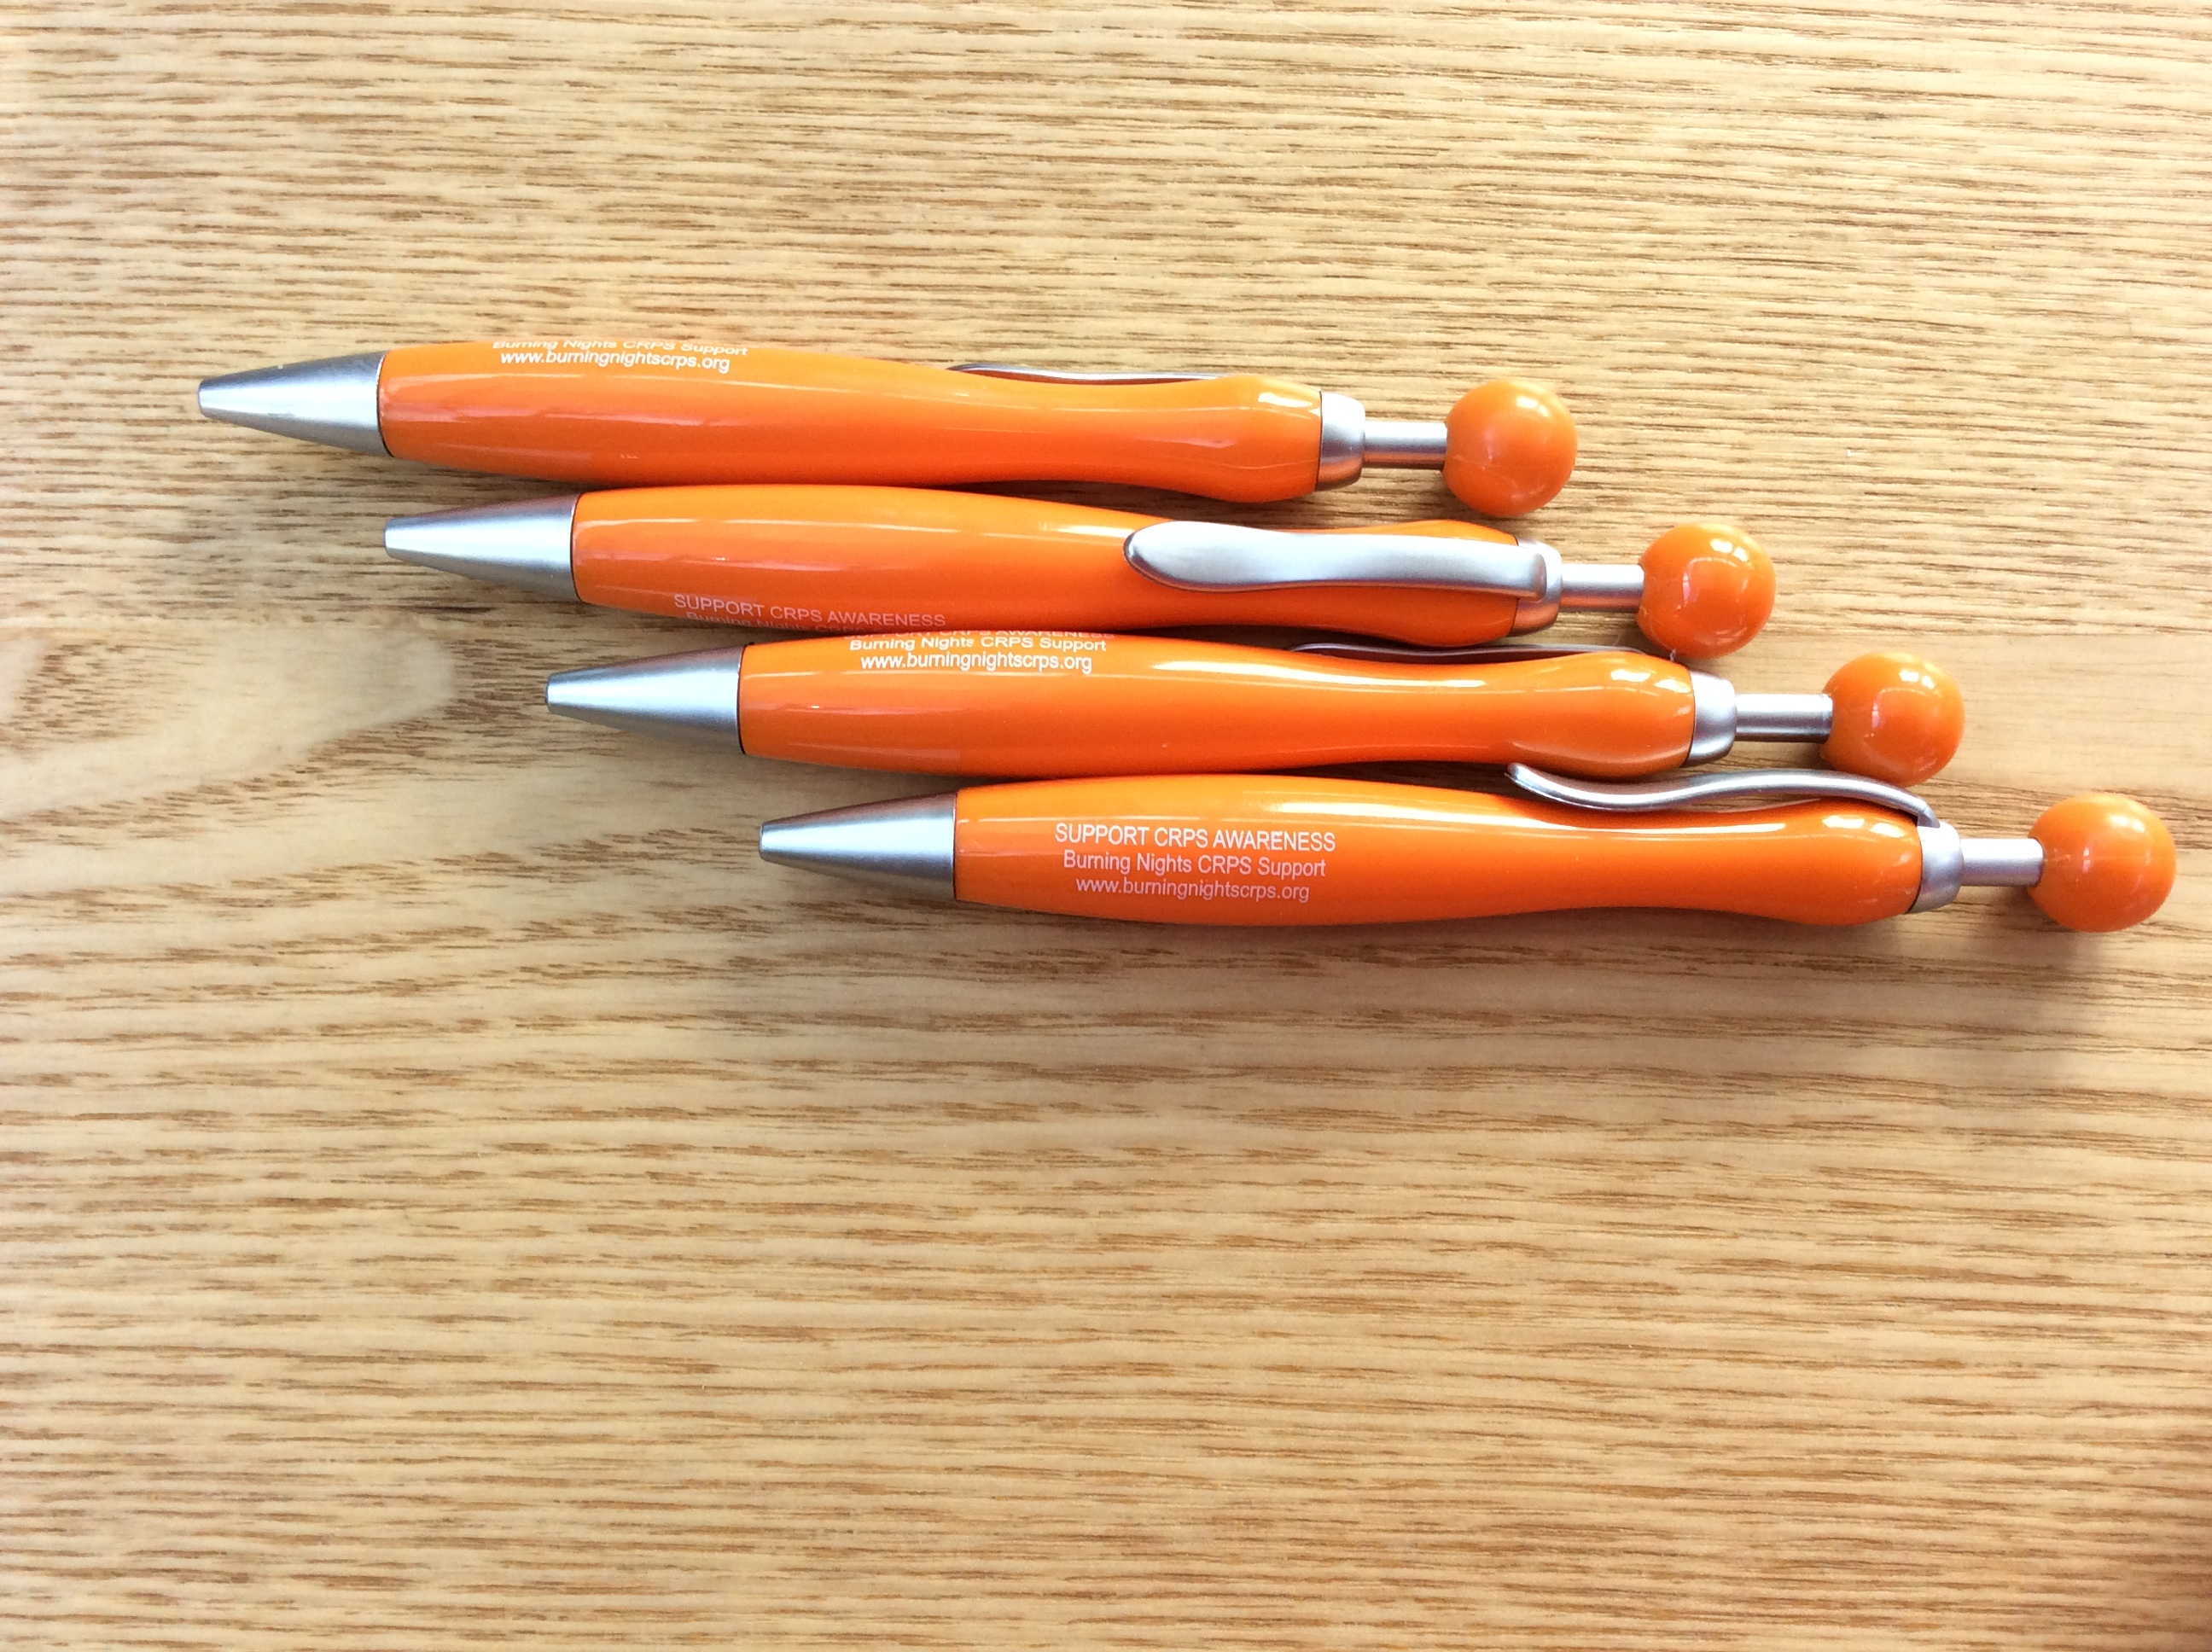 Burning Nights CRPS Awareness Pen